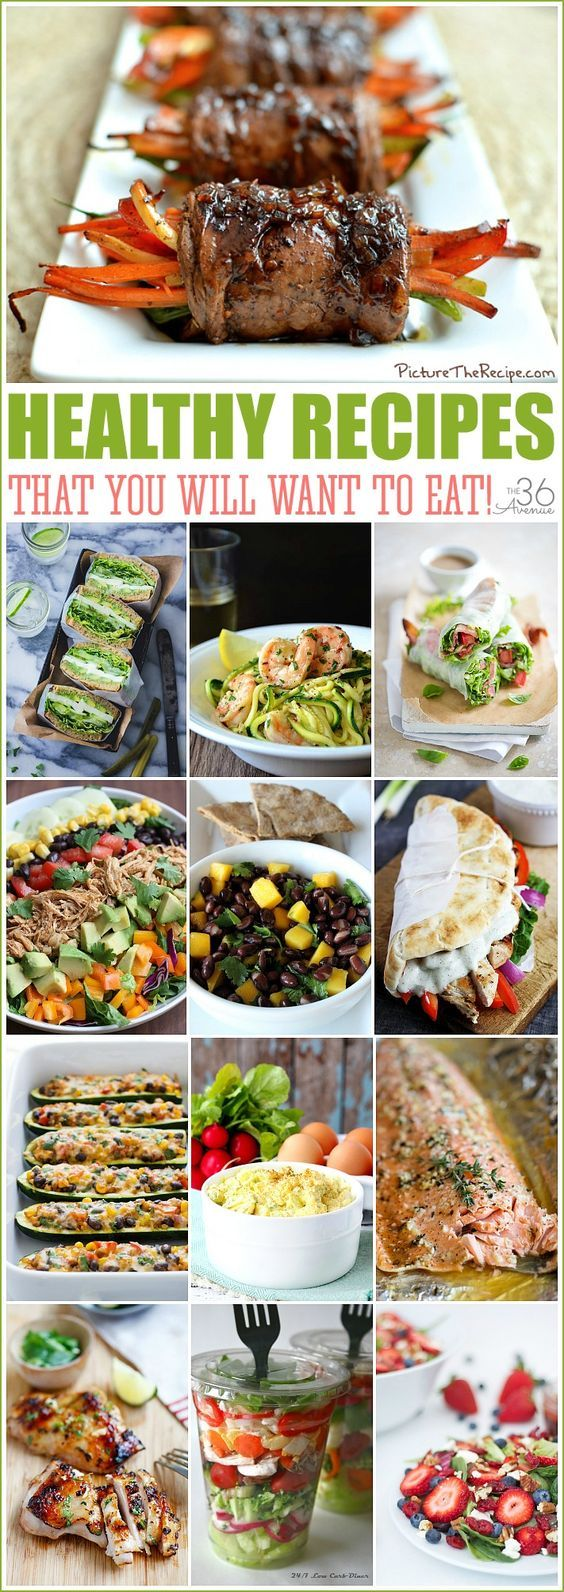 25 Healthy Recipes that will help me get to my goal weight, plus they are so #yummy #healthyrecipes